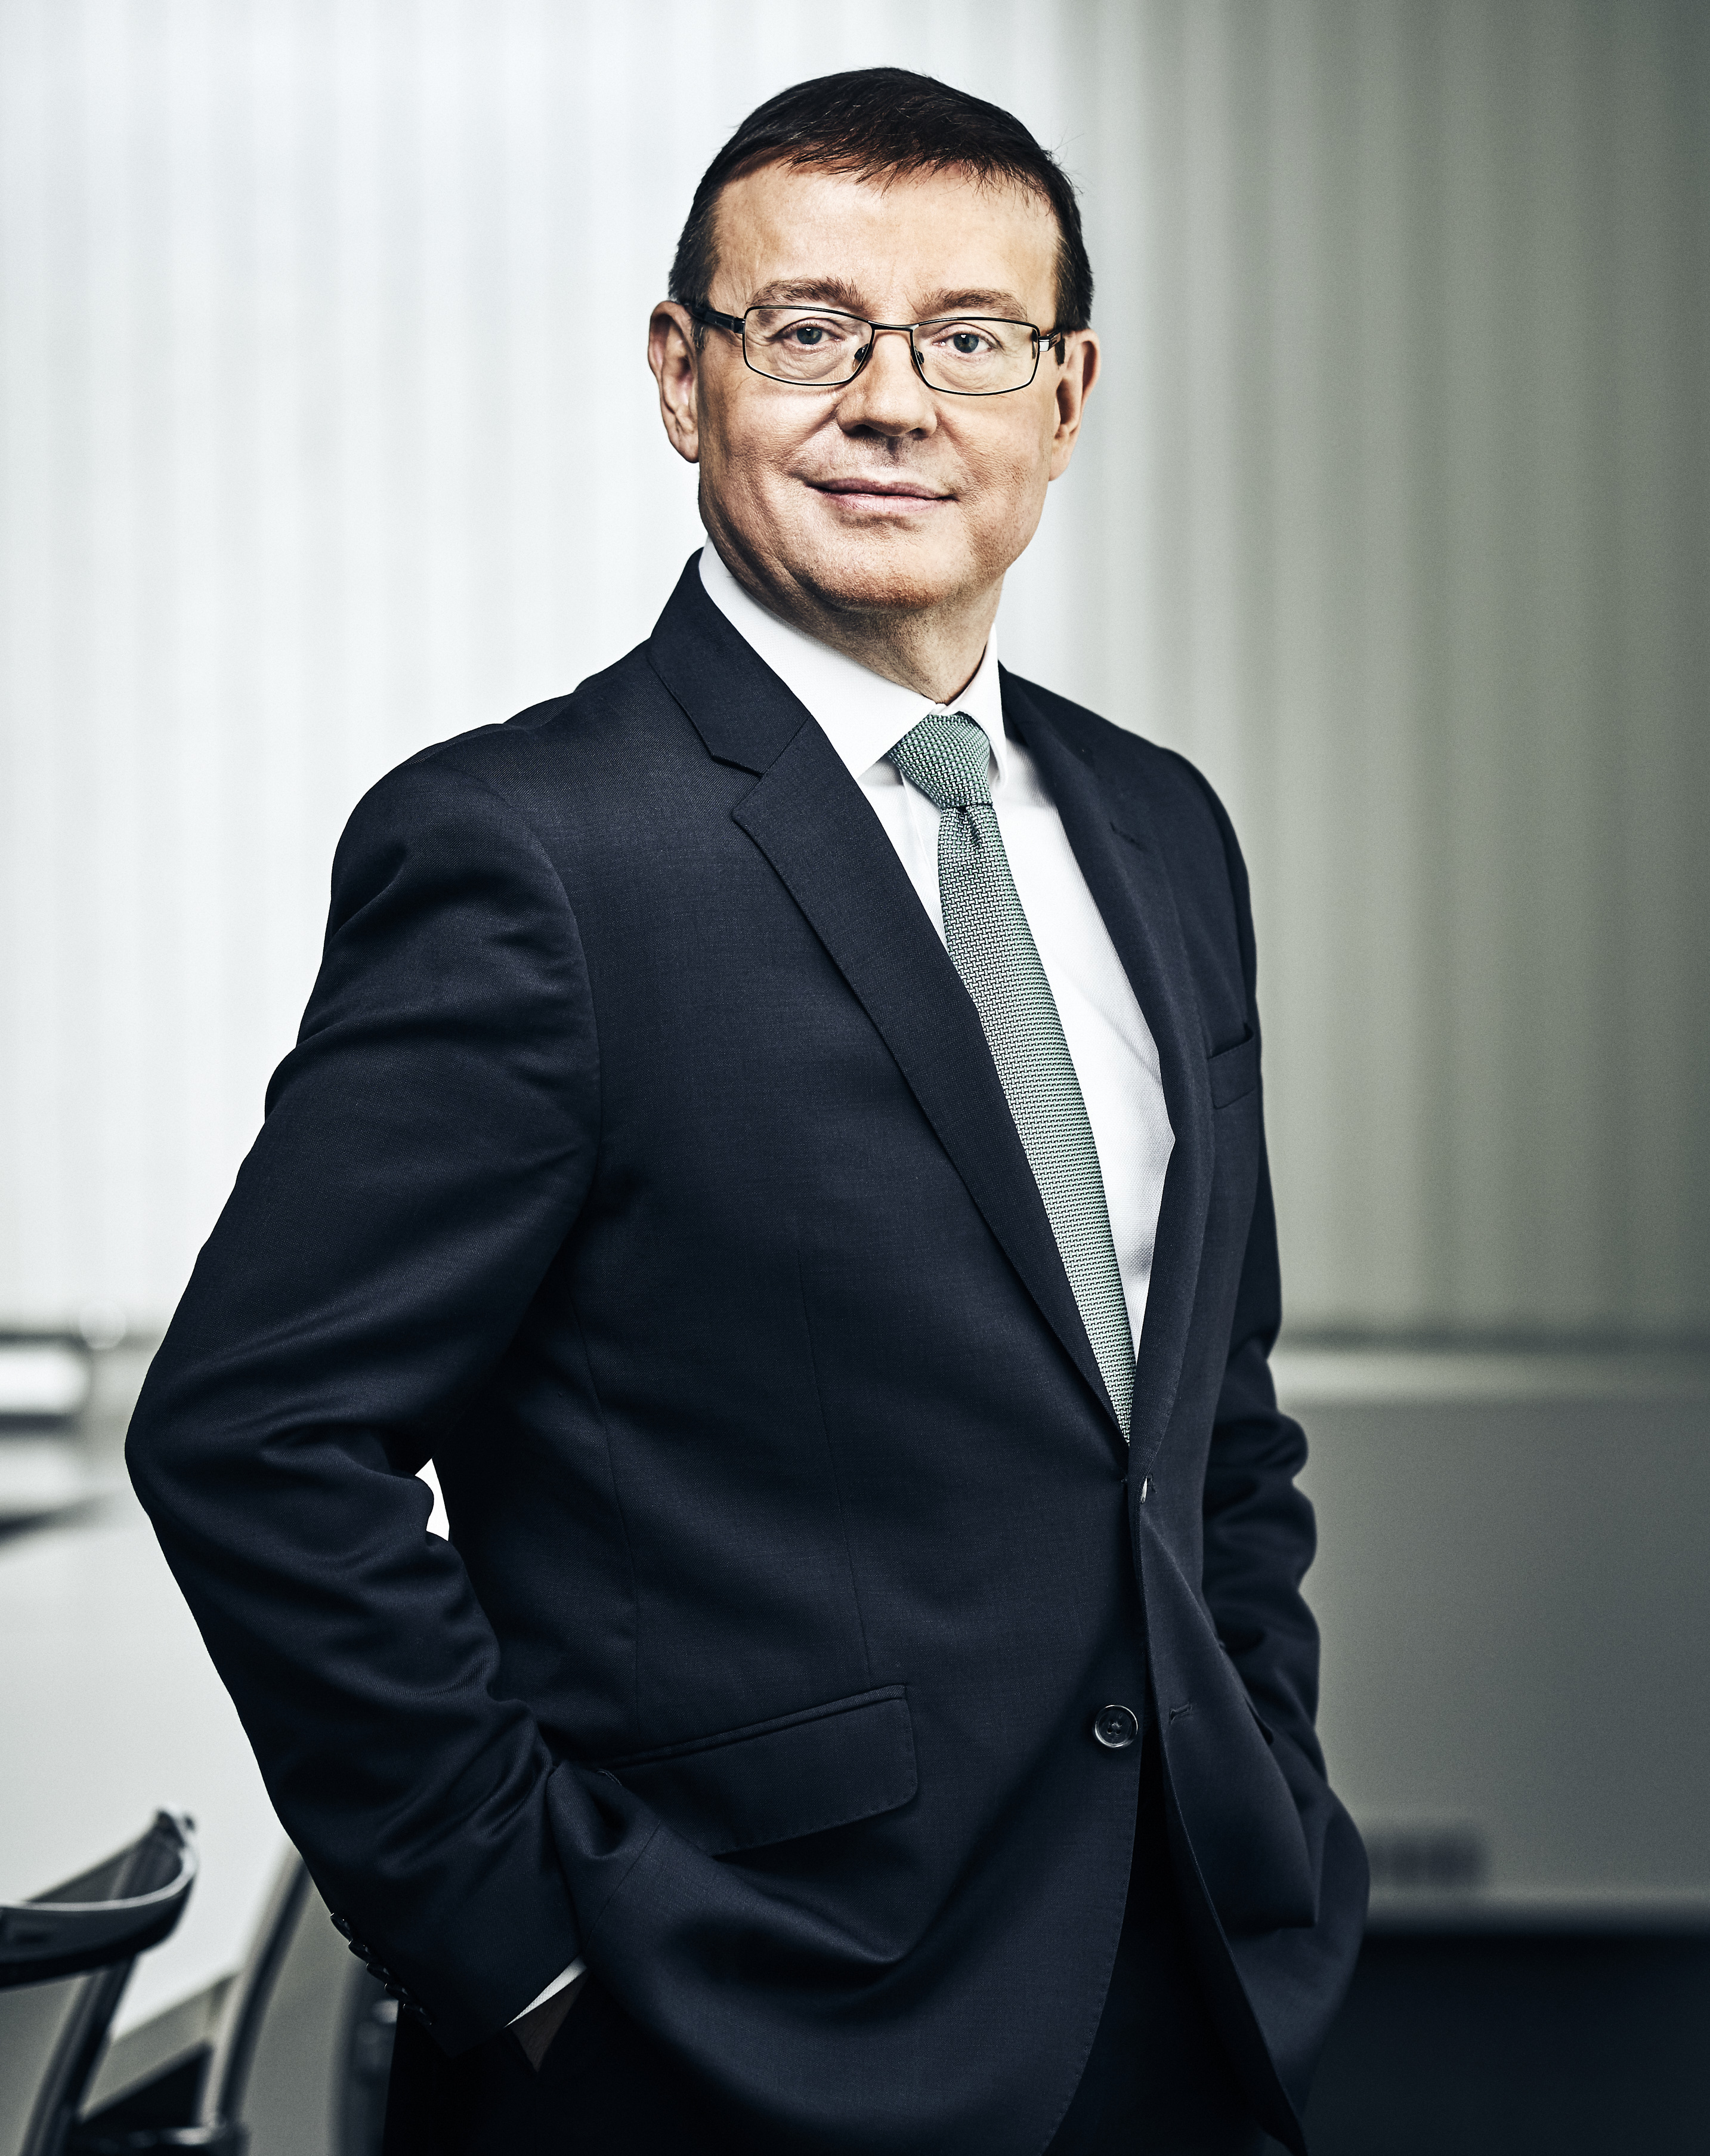 SKODA AUTO announces changes to Board of Management as of 1 March 2021 - Image 3